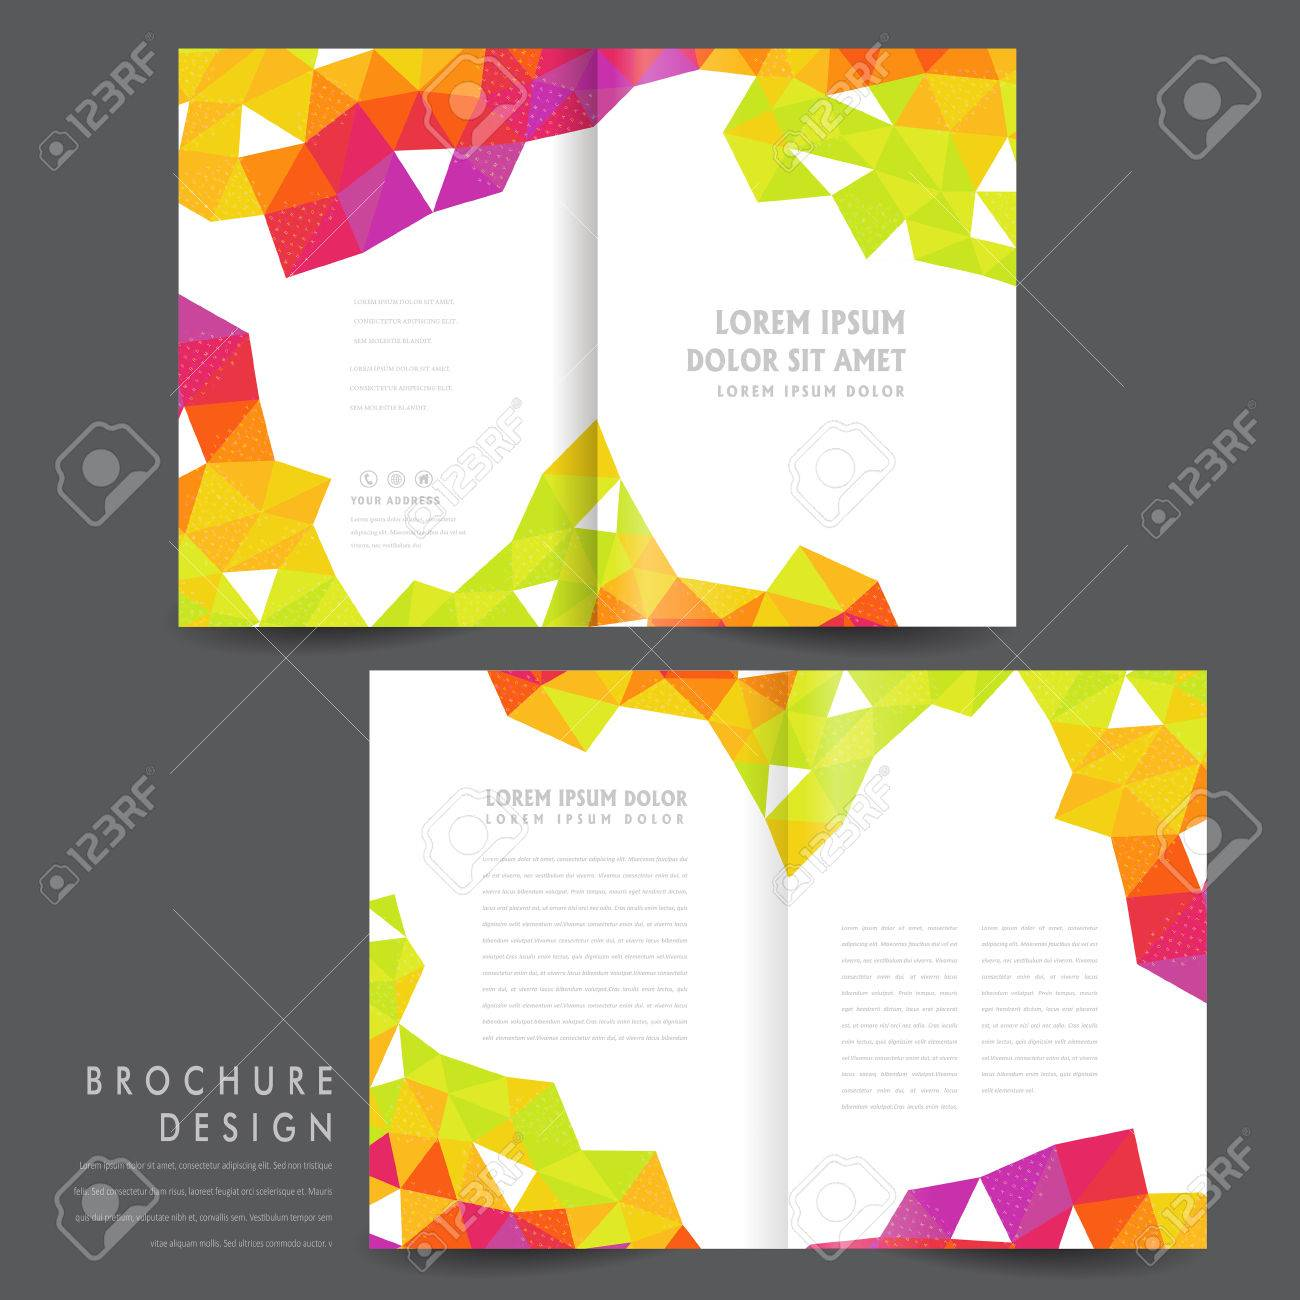 37966768 attractive half fold brochure template design with colorful polygon elements over white Top Result 20 New Half Fold Brochure Template Free Photos 2017 Hgd6